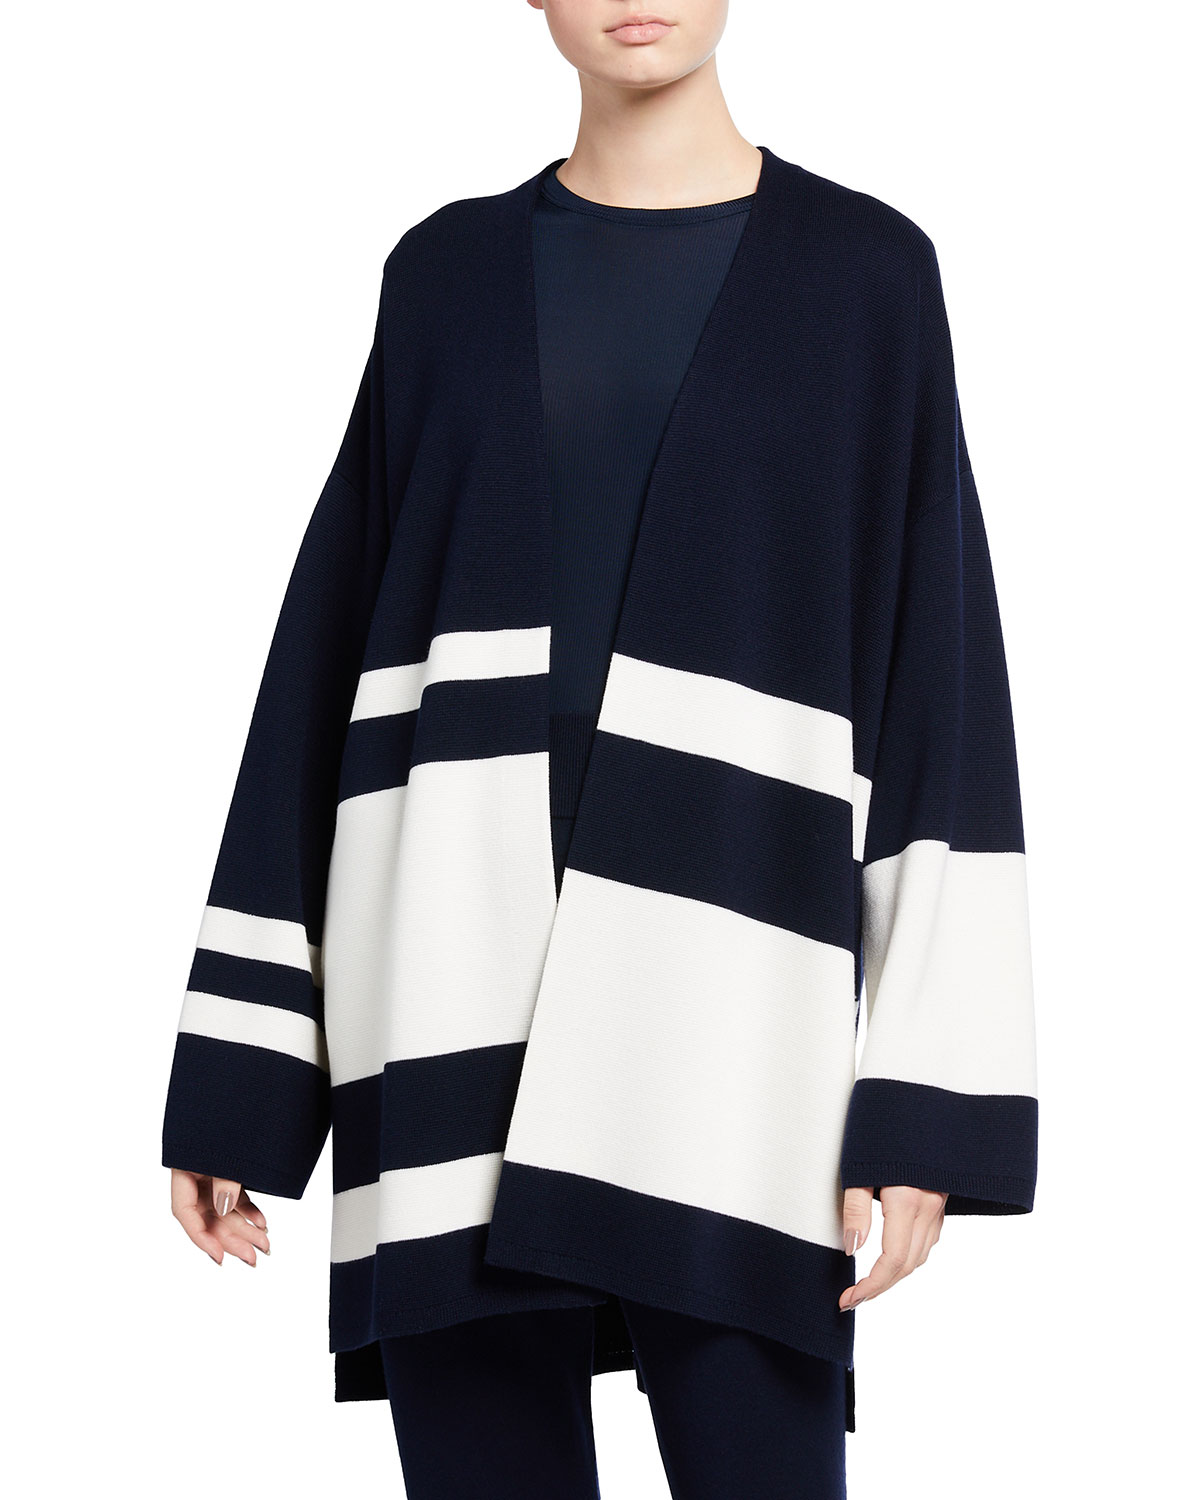 Striped Milano Knit Cardigan